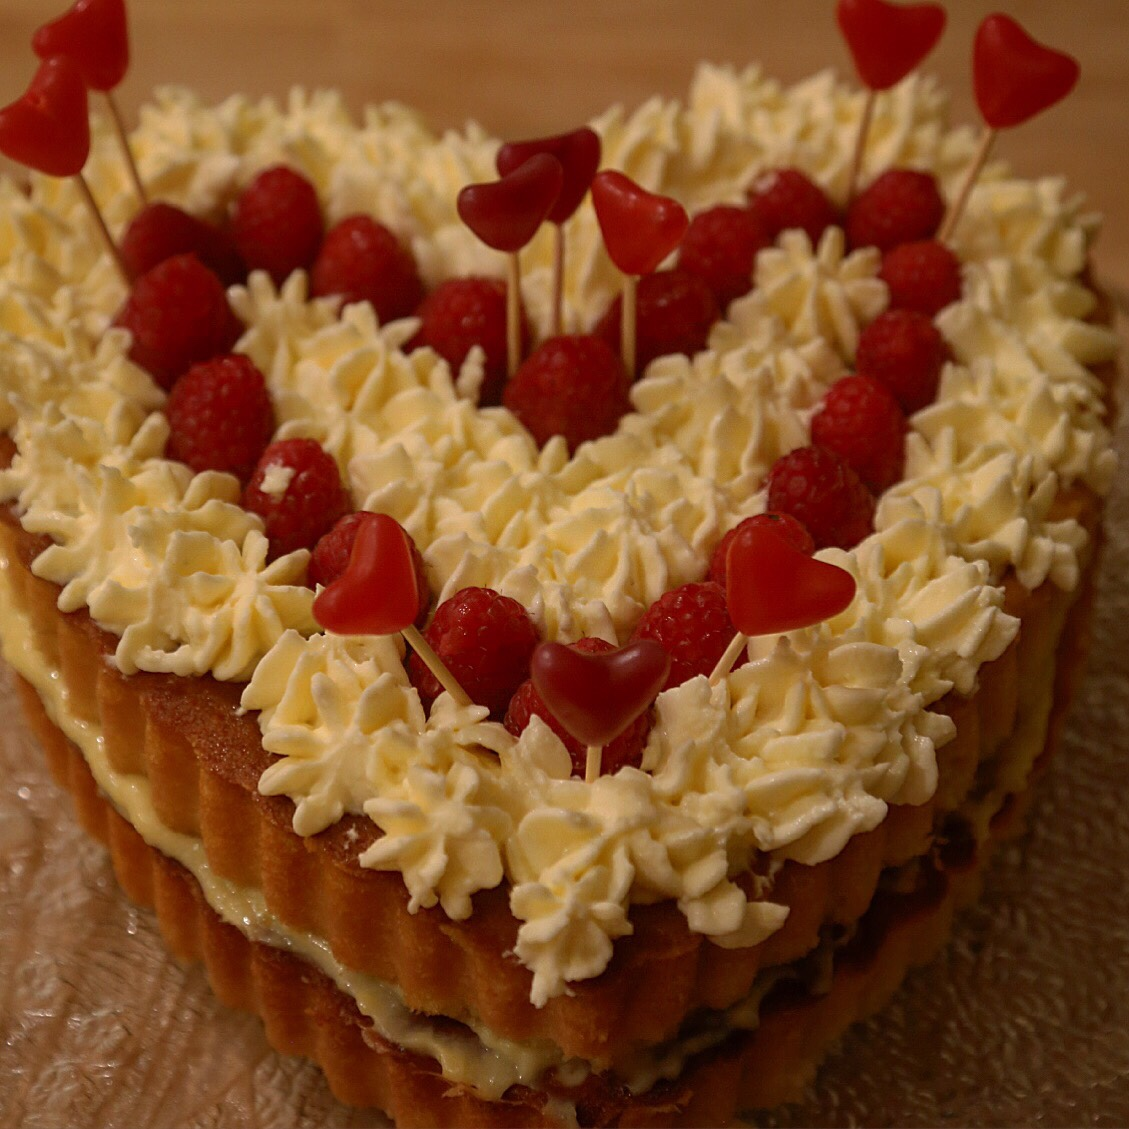 A special valentines cake